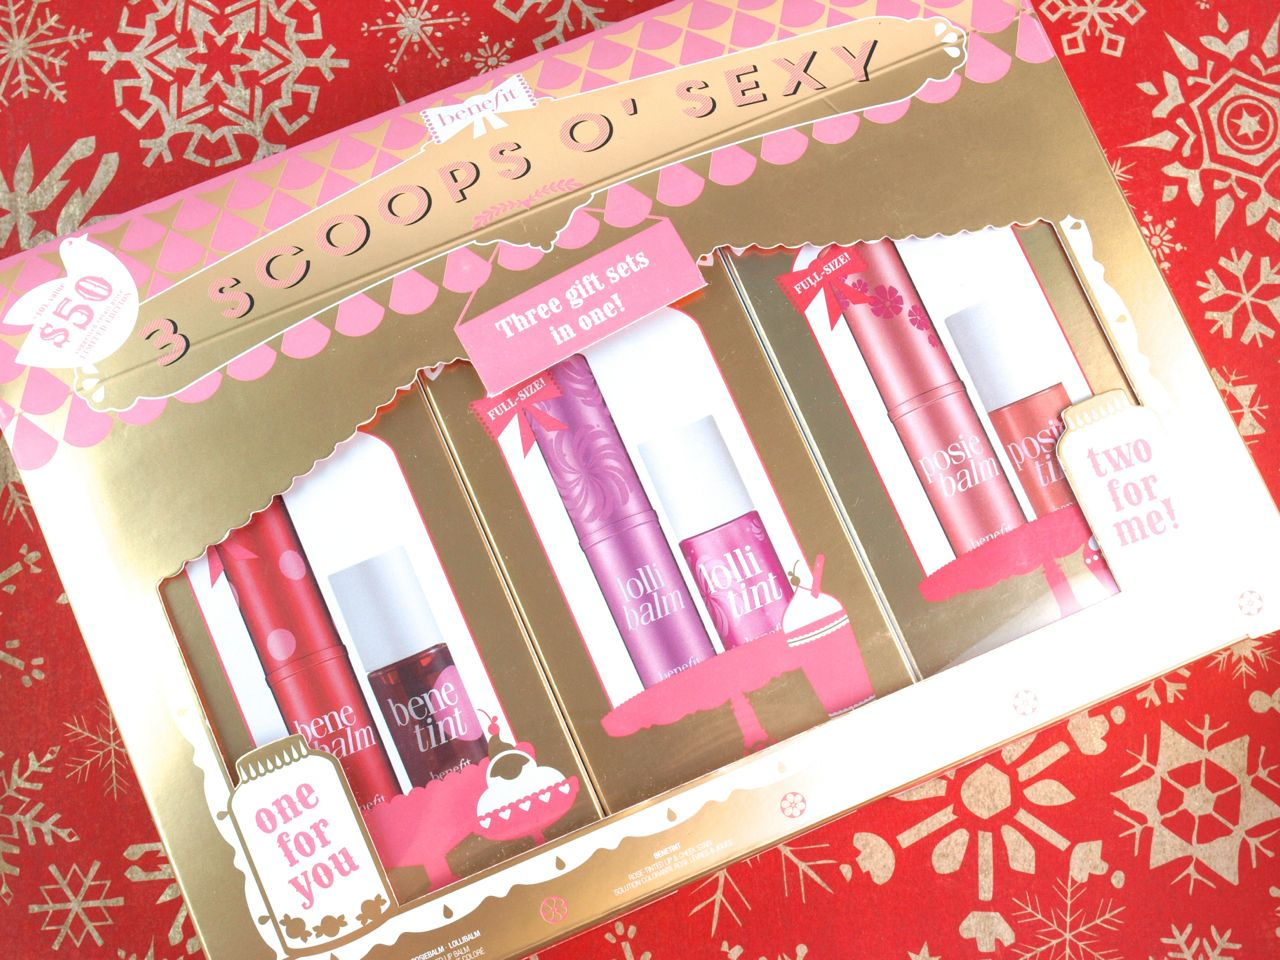 Benefit Cosmetics 3 Scoops O' Sexy Gift Set: Review and Swatches